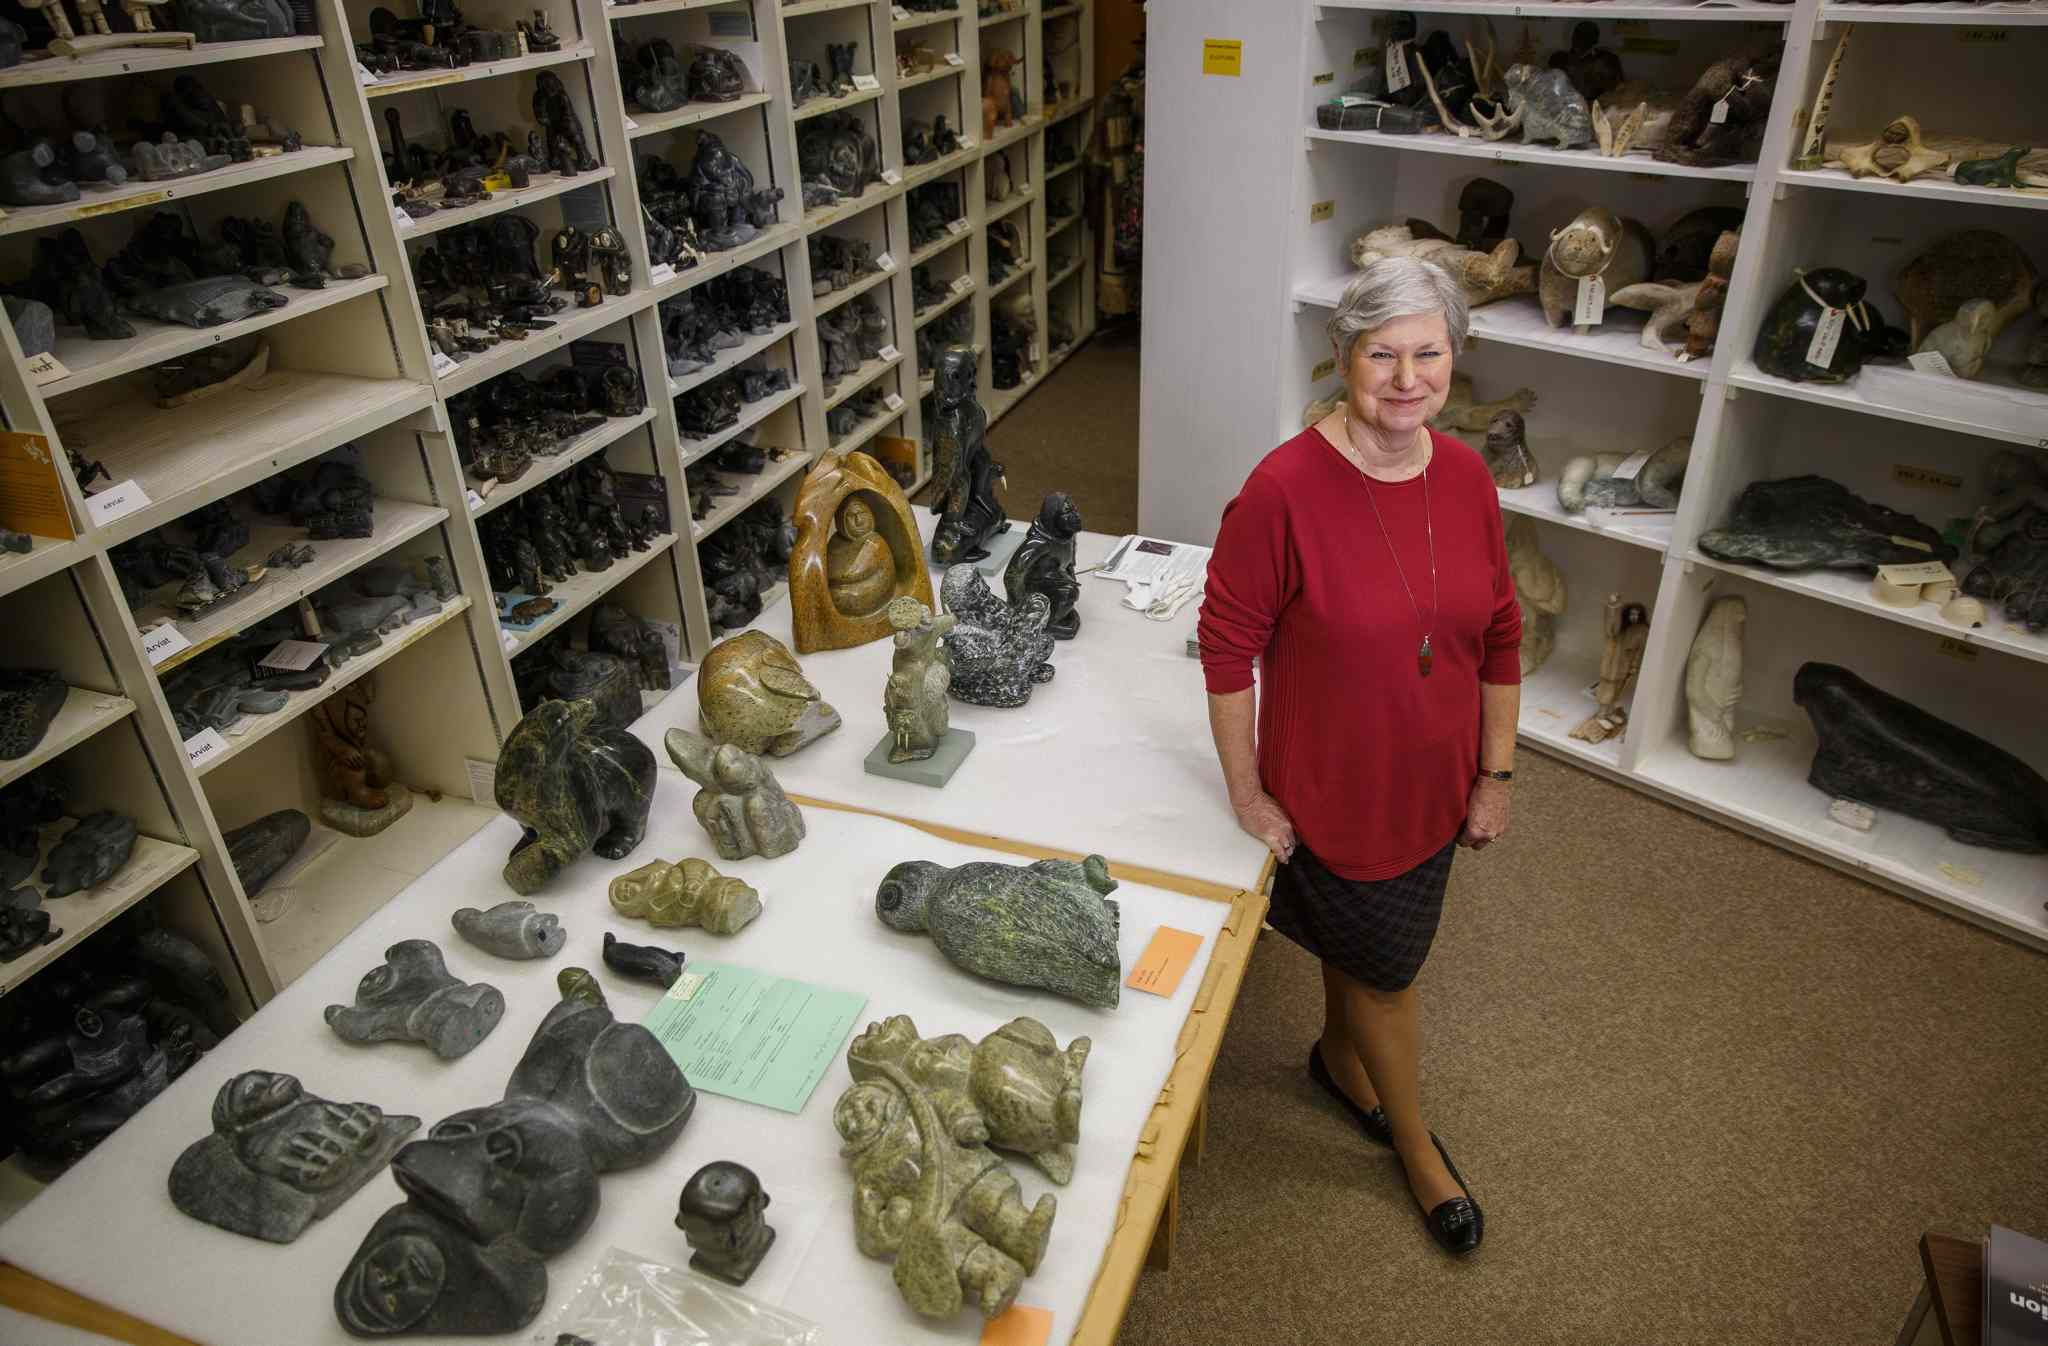 MIKE DEAL / WINNIPEG FREE PRESS</p><P> Curator Darlene Coward Wight among the WAG's 'encyclopedic collection' of Inuit art.